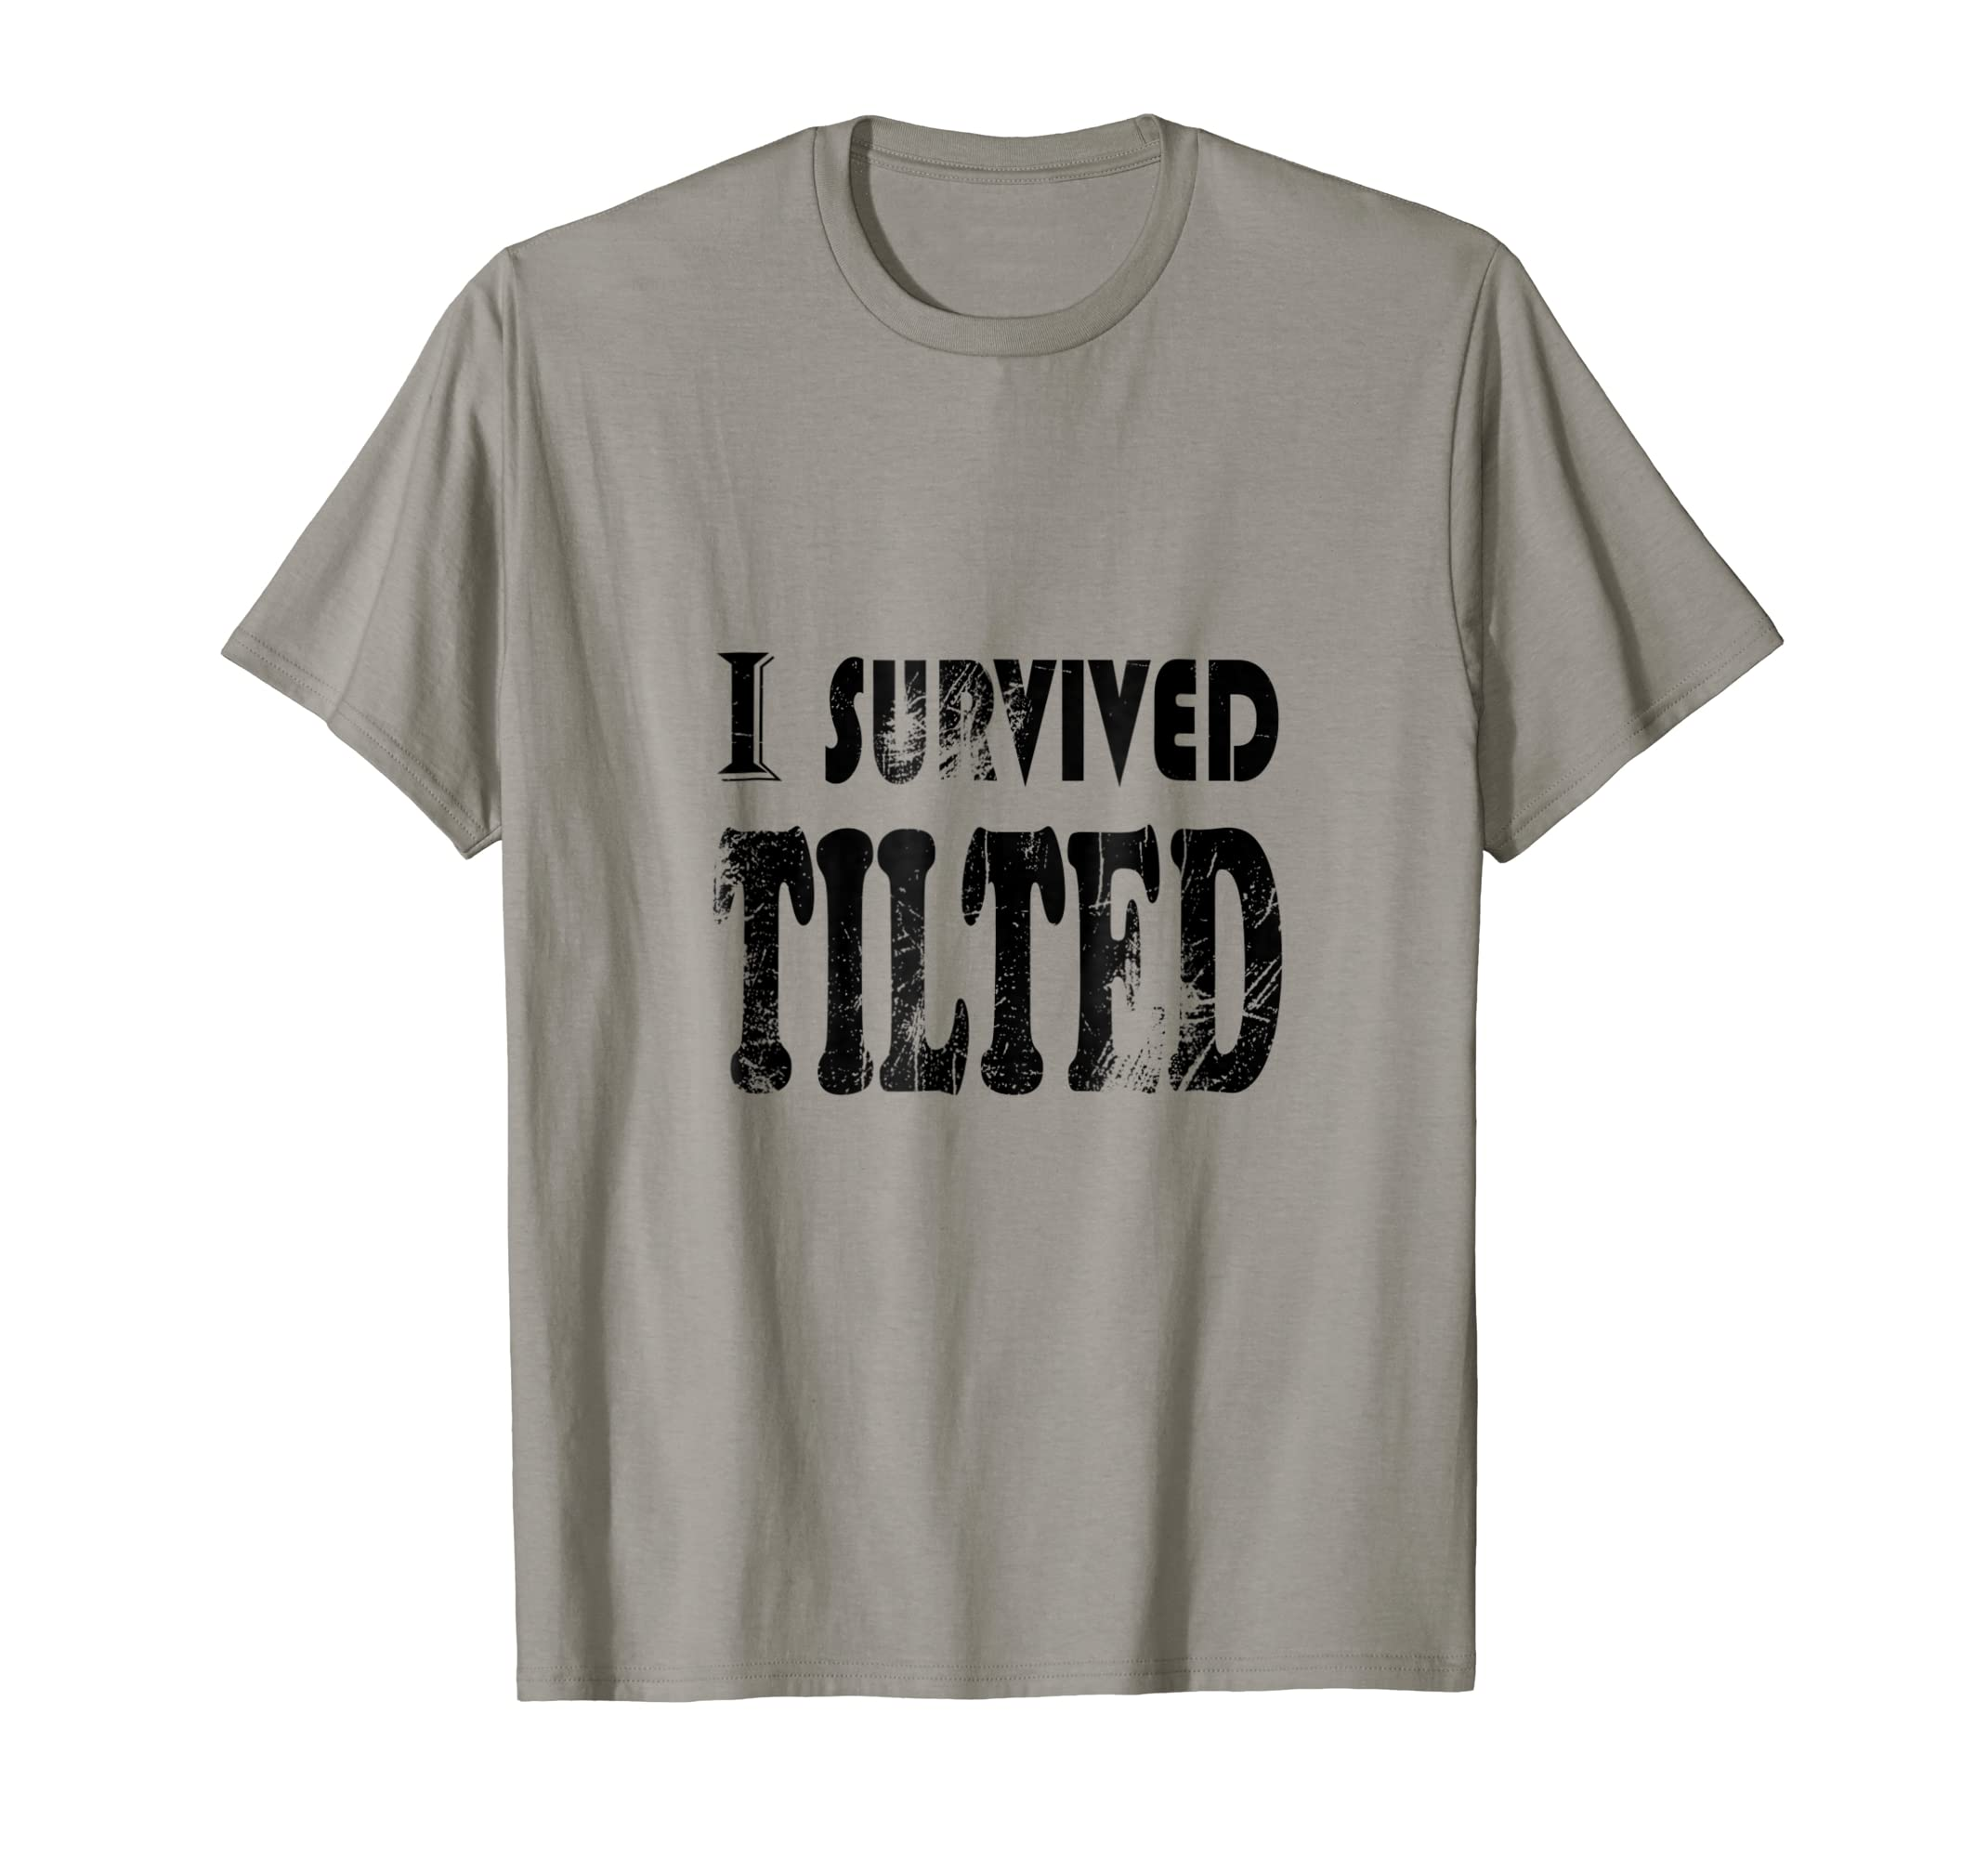 4b7ed1243 Amazon.com: I Survived Tilted Gaming Shirt: Clothing